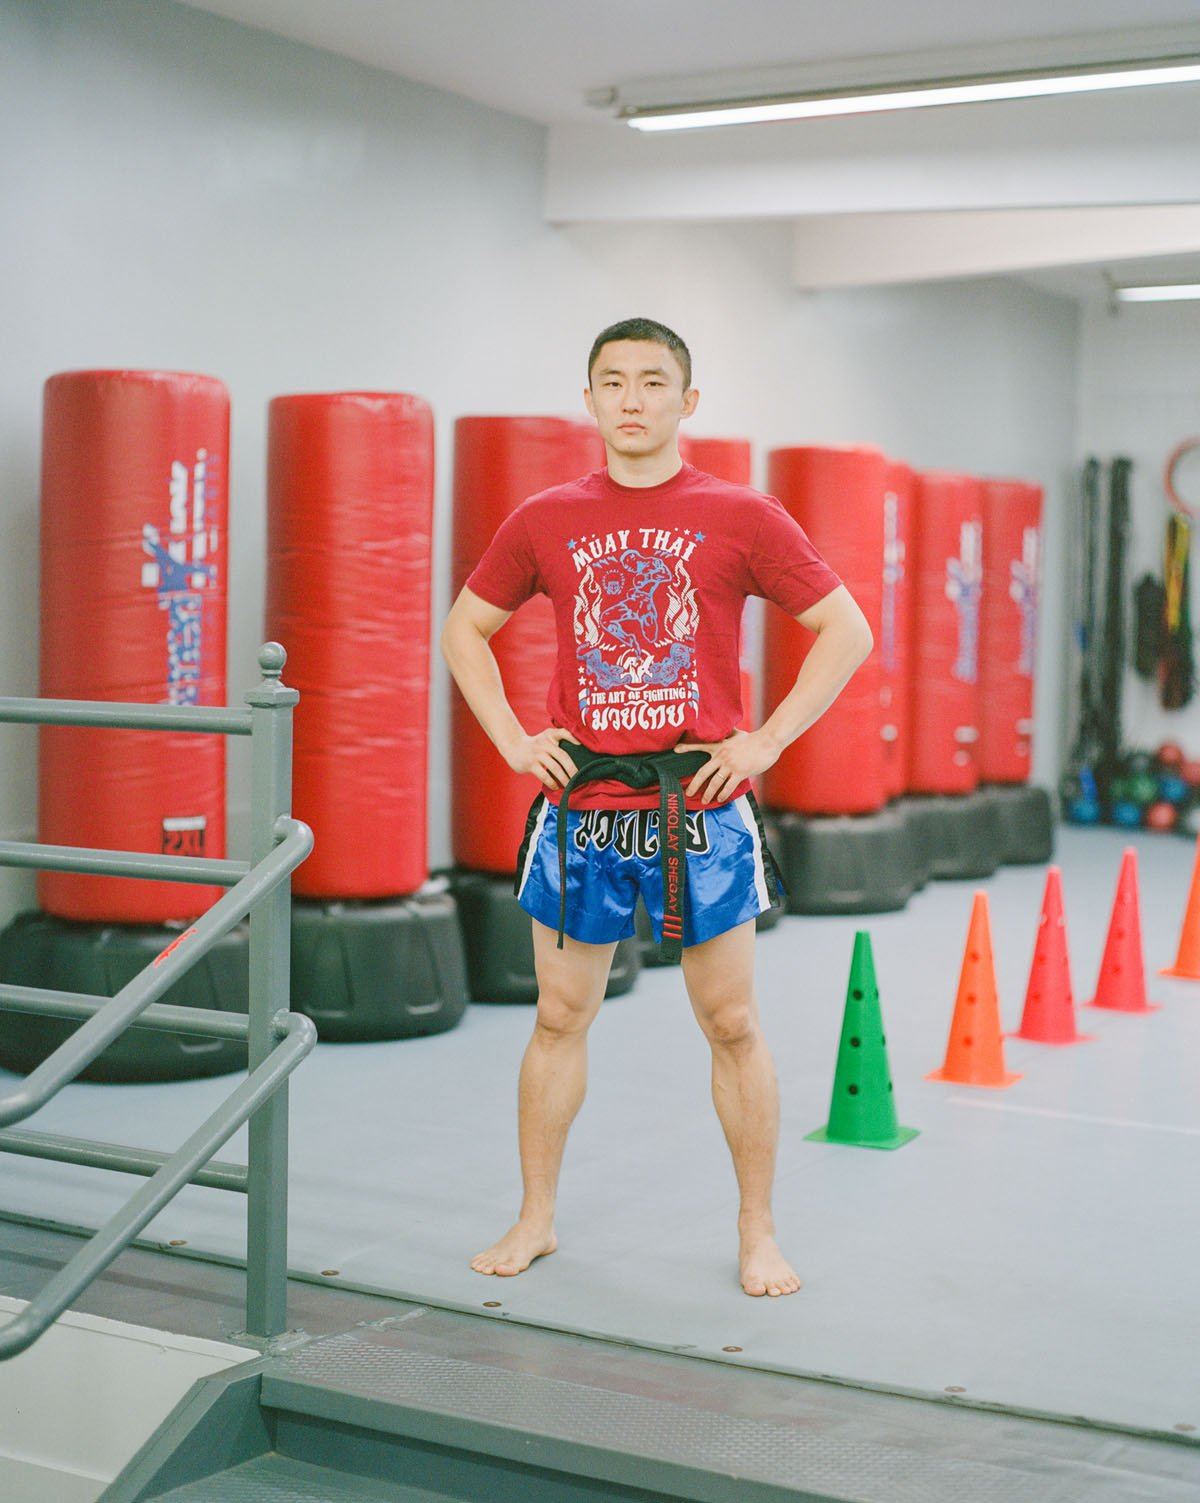 Martial Arts Instructor/Competitor. By way of Russia, Uzbekistan and South Korea